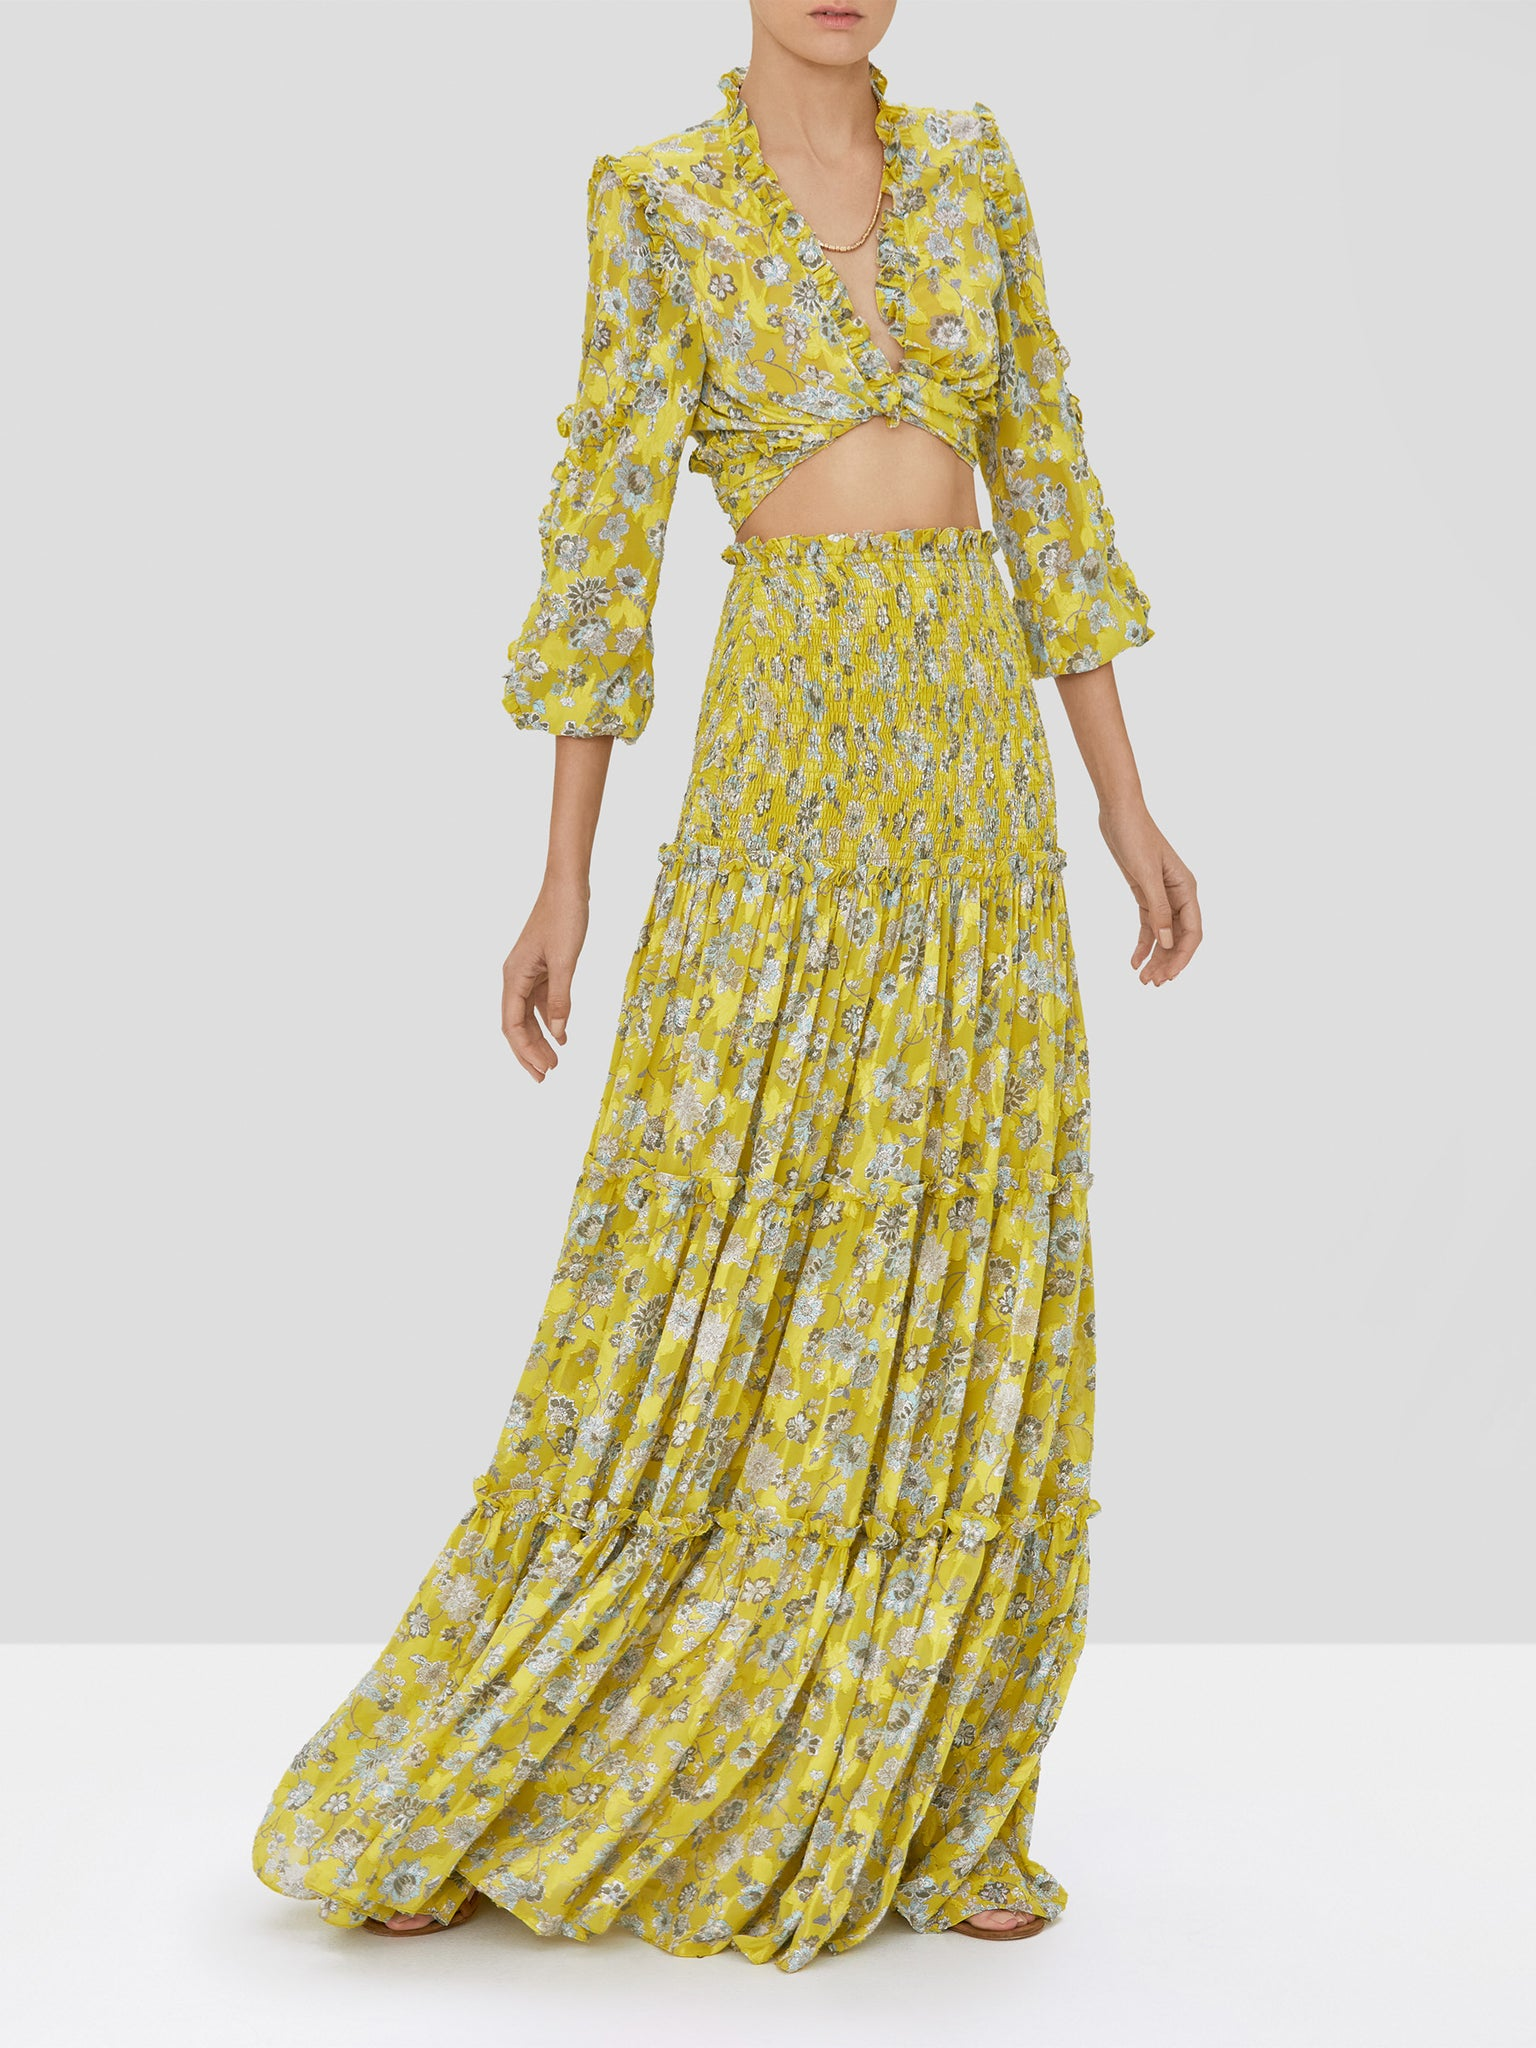 Alexis Odilo Top and Galarza Skirt in Citron Floral from our Pre-Spring 2020 Ready To Wear Collection